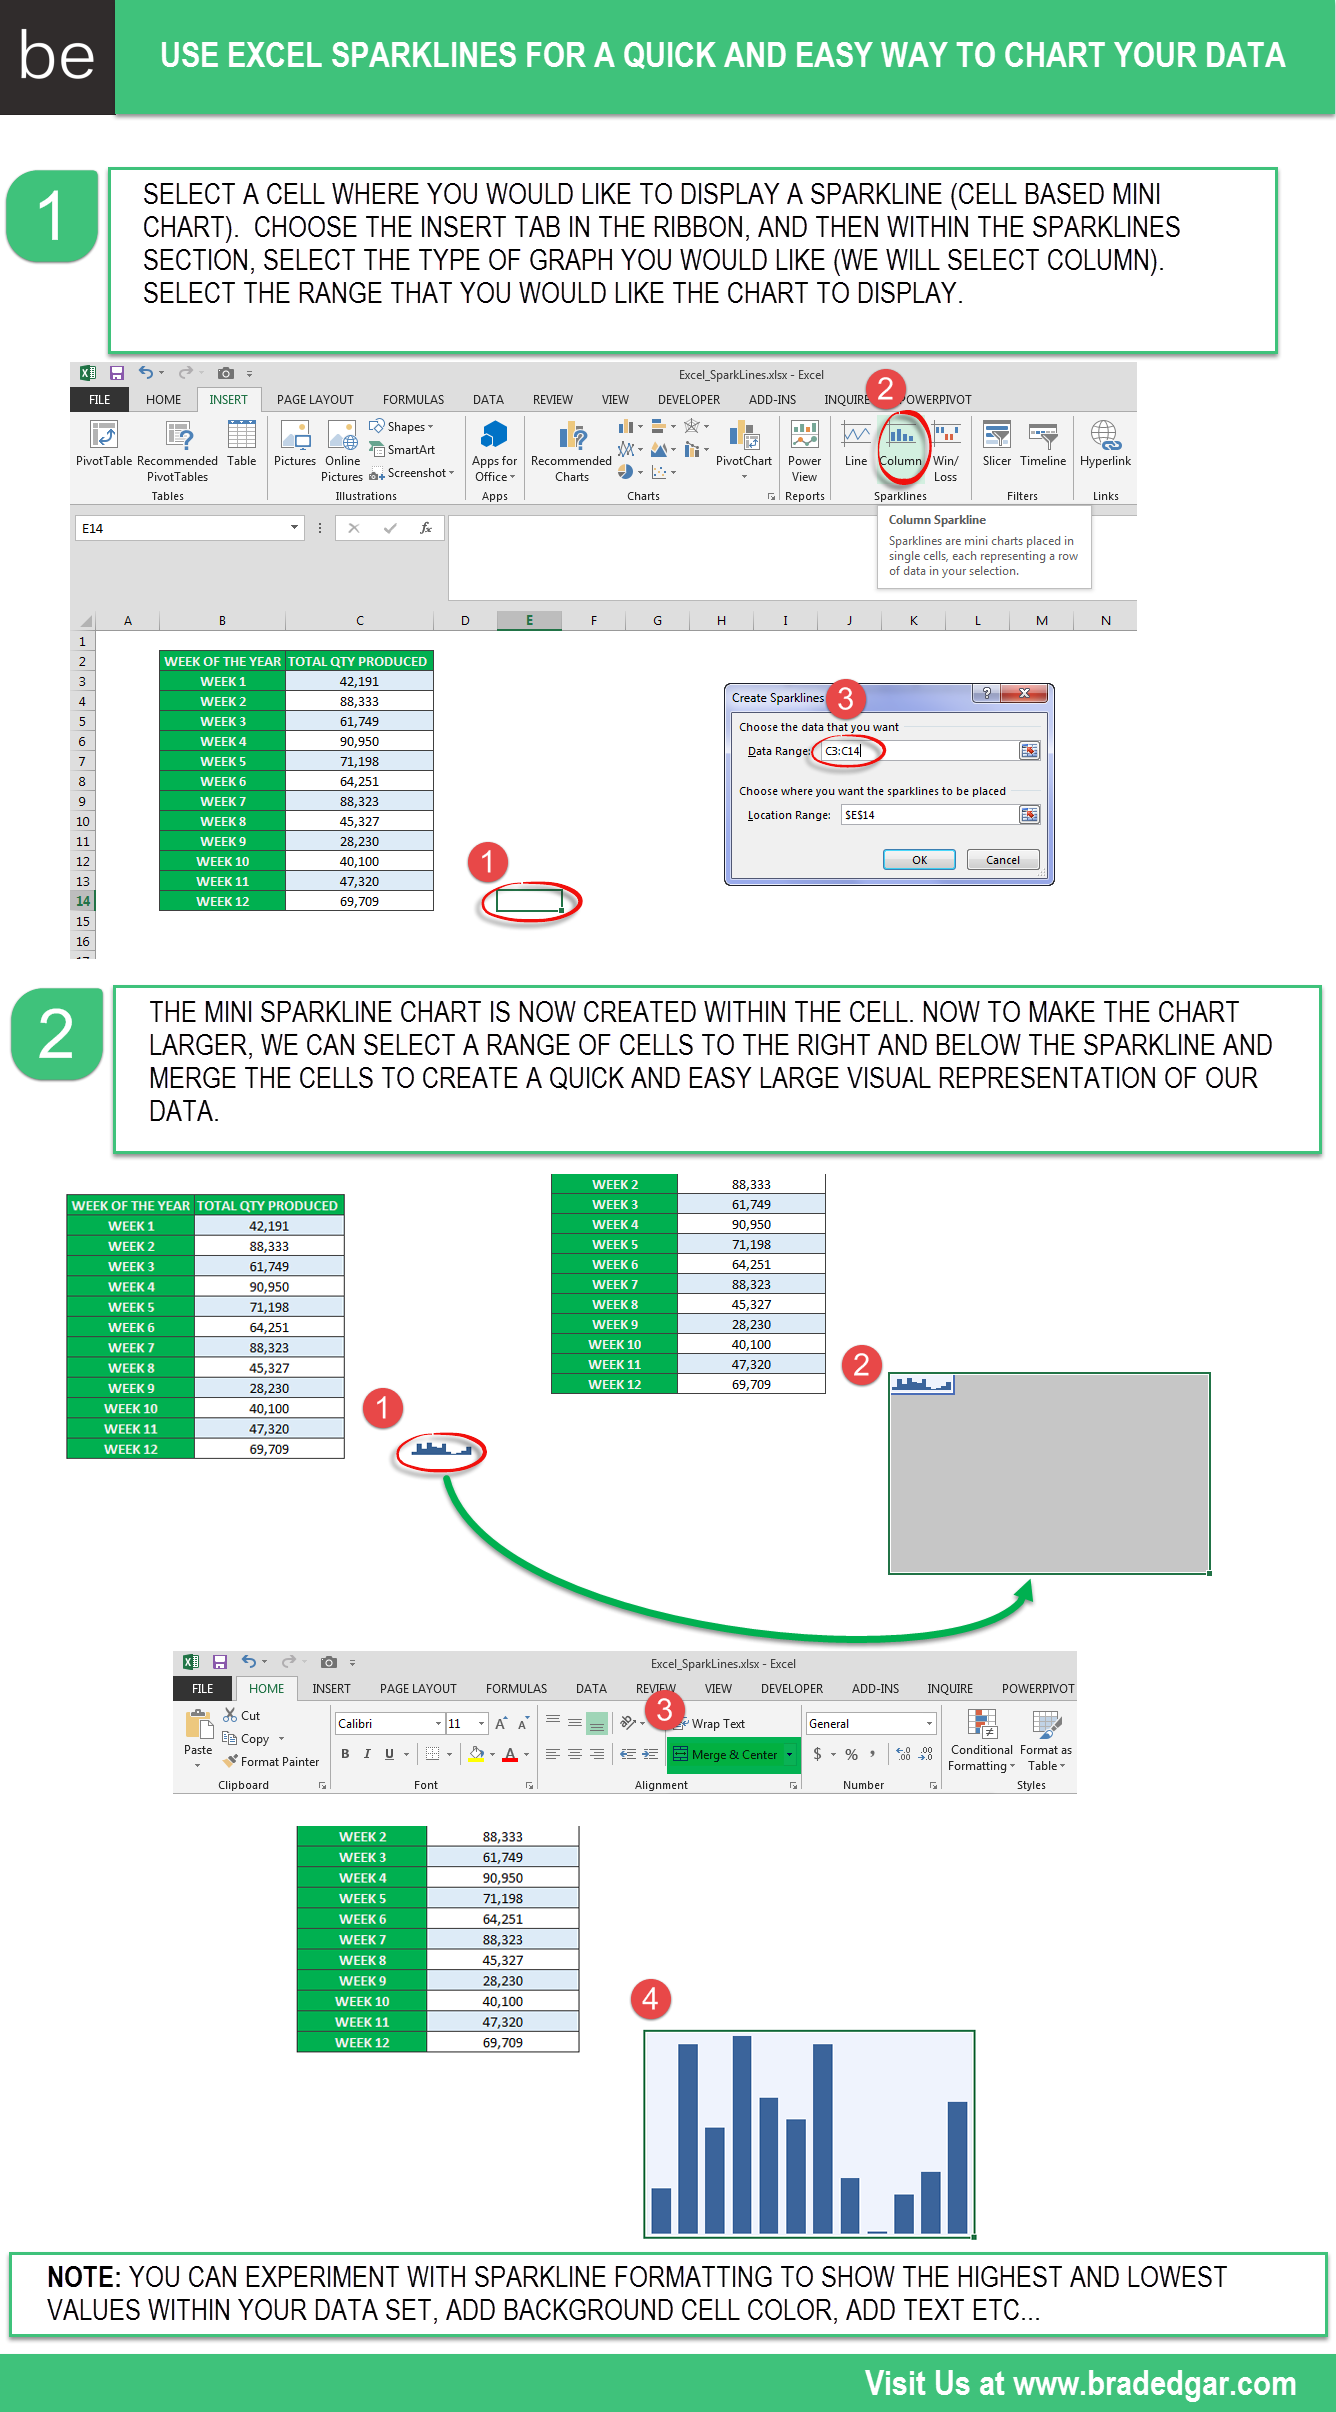 Excel Sparklines Merge Sparkline Cells For Quick And Easy Charts Brad Edgar Excel Excel Spreadsheets Computer Help